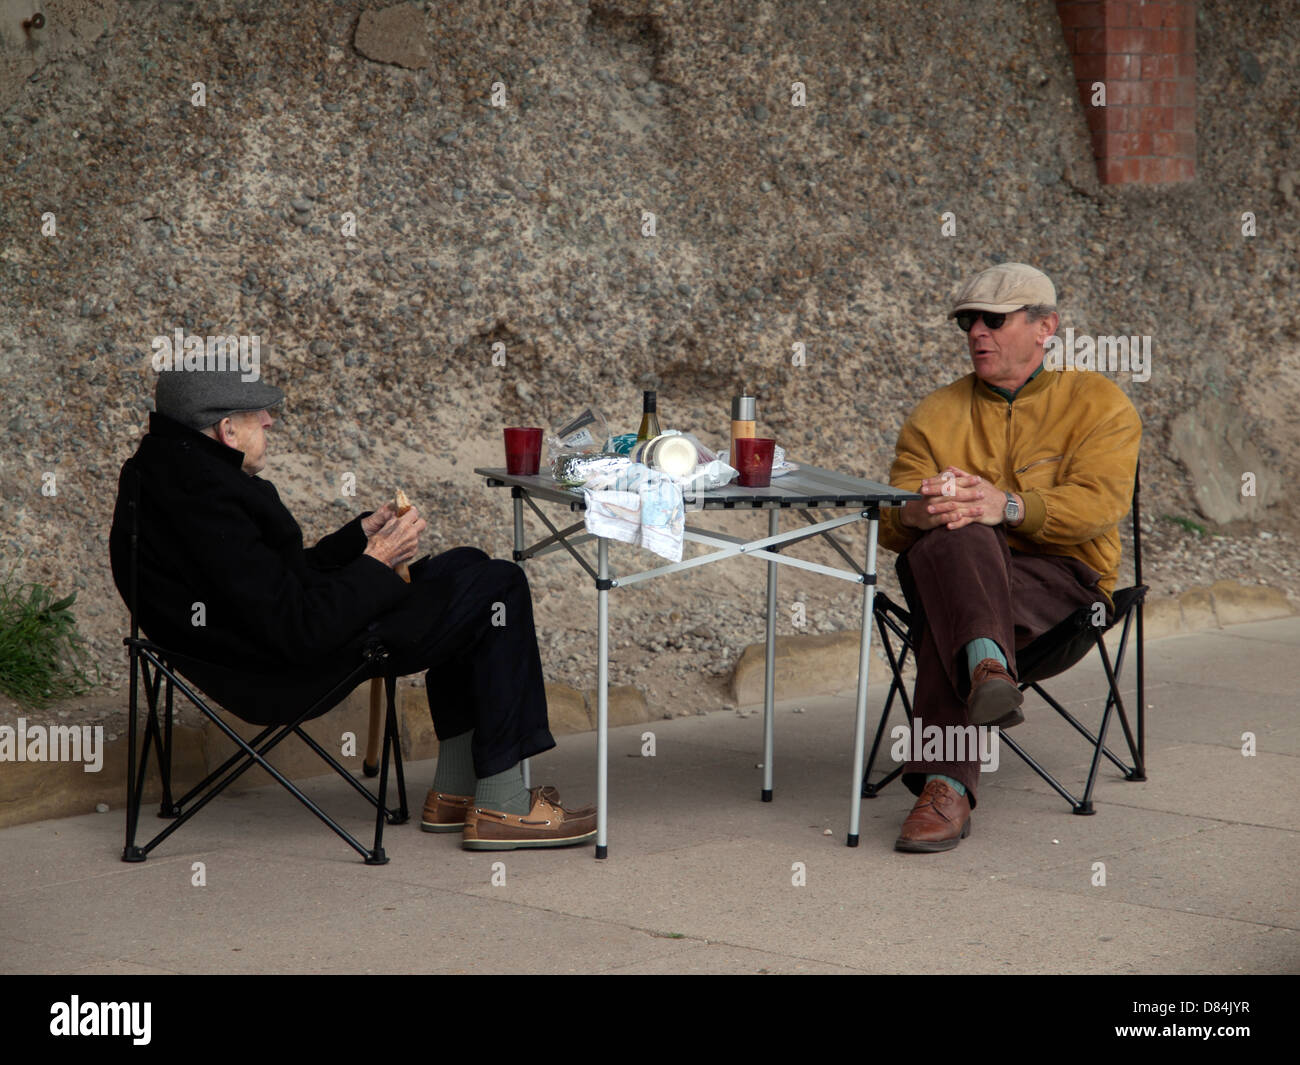 A picnic for two men in Brighton - Stock Image